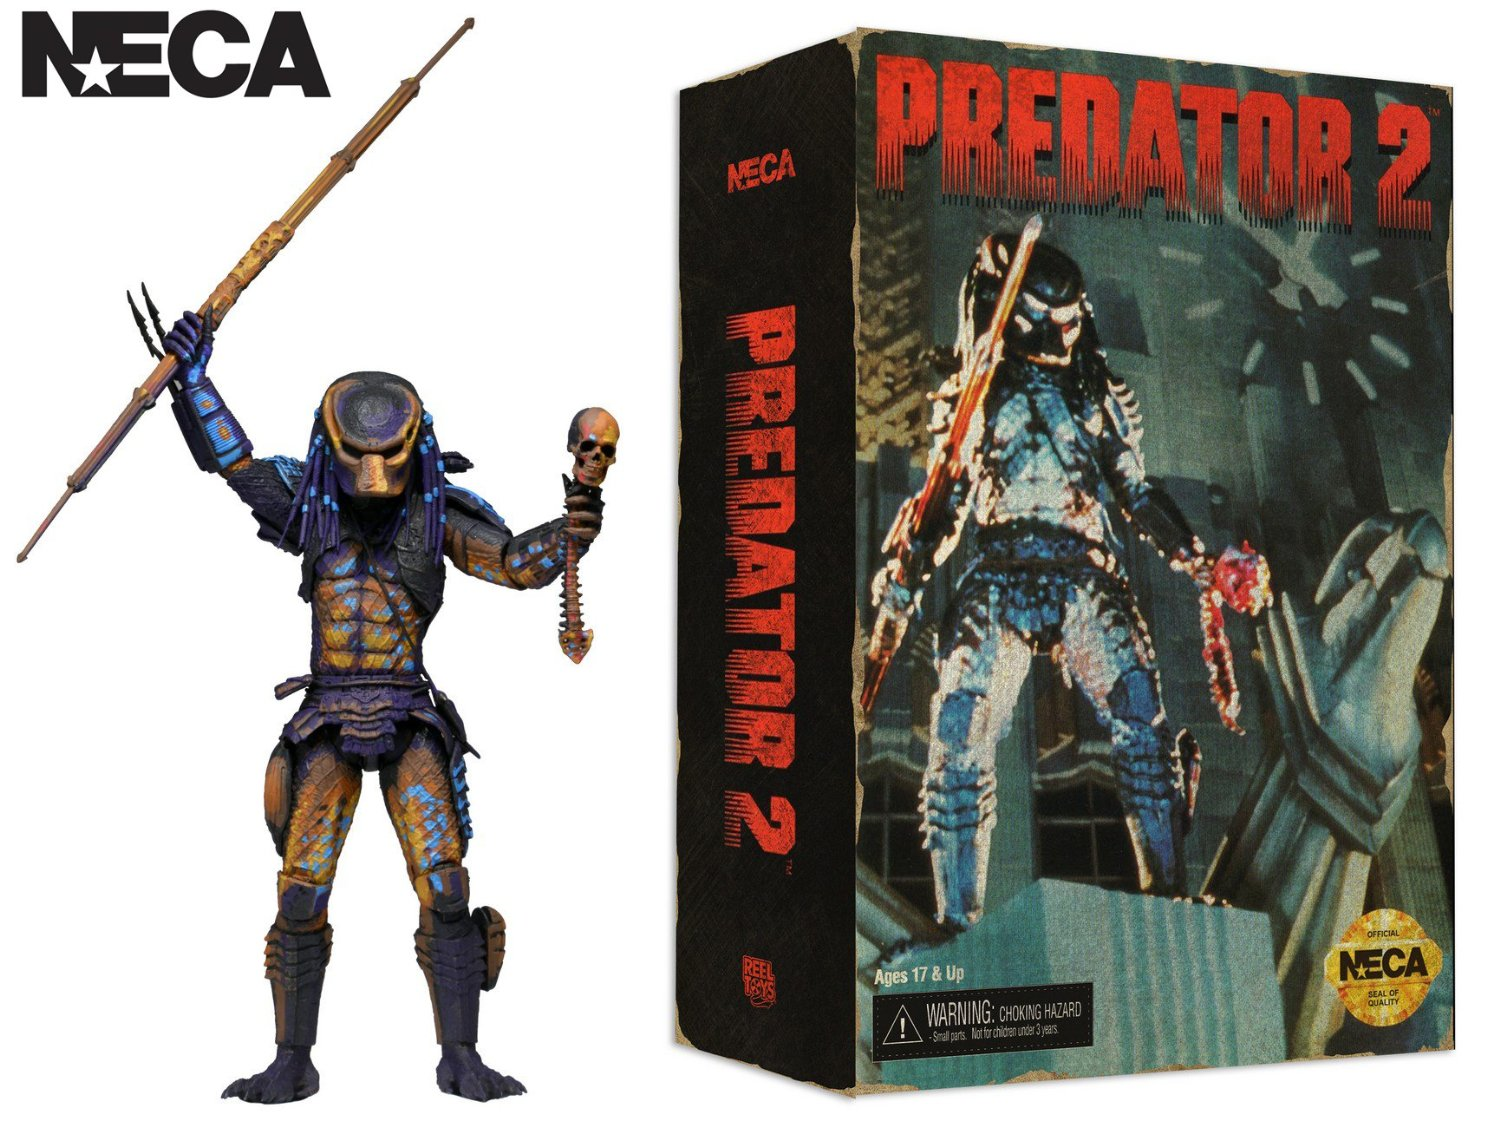 NECA Predators 2 PVC Action Figure Collectible Model Toy Classic Toys 7 18cm MVFG316